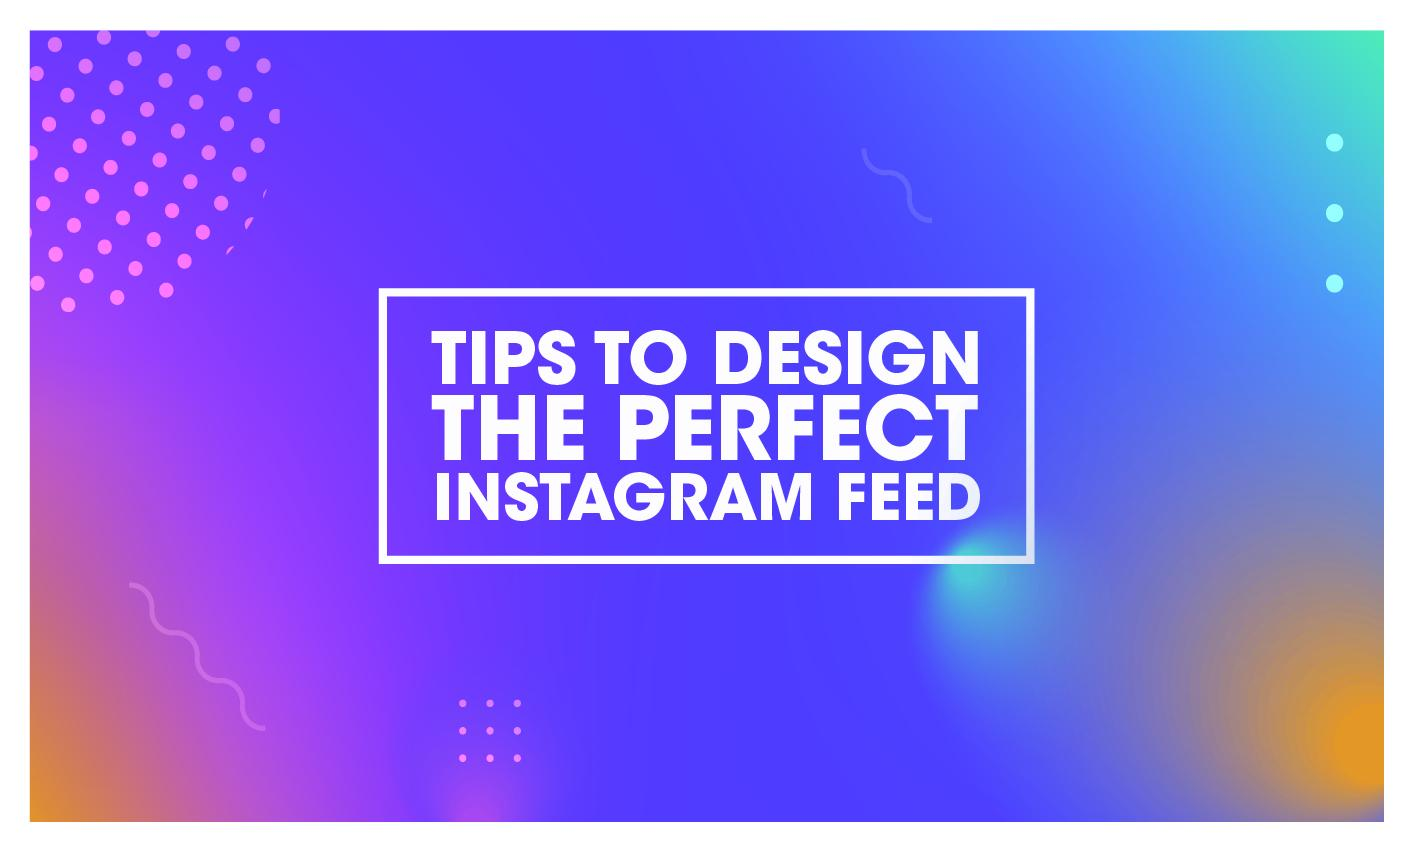 TIPS TO DESIGN THE PERFECT INSTAGRAM FEED - News